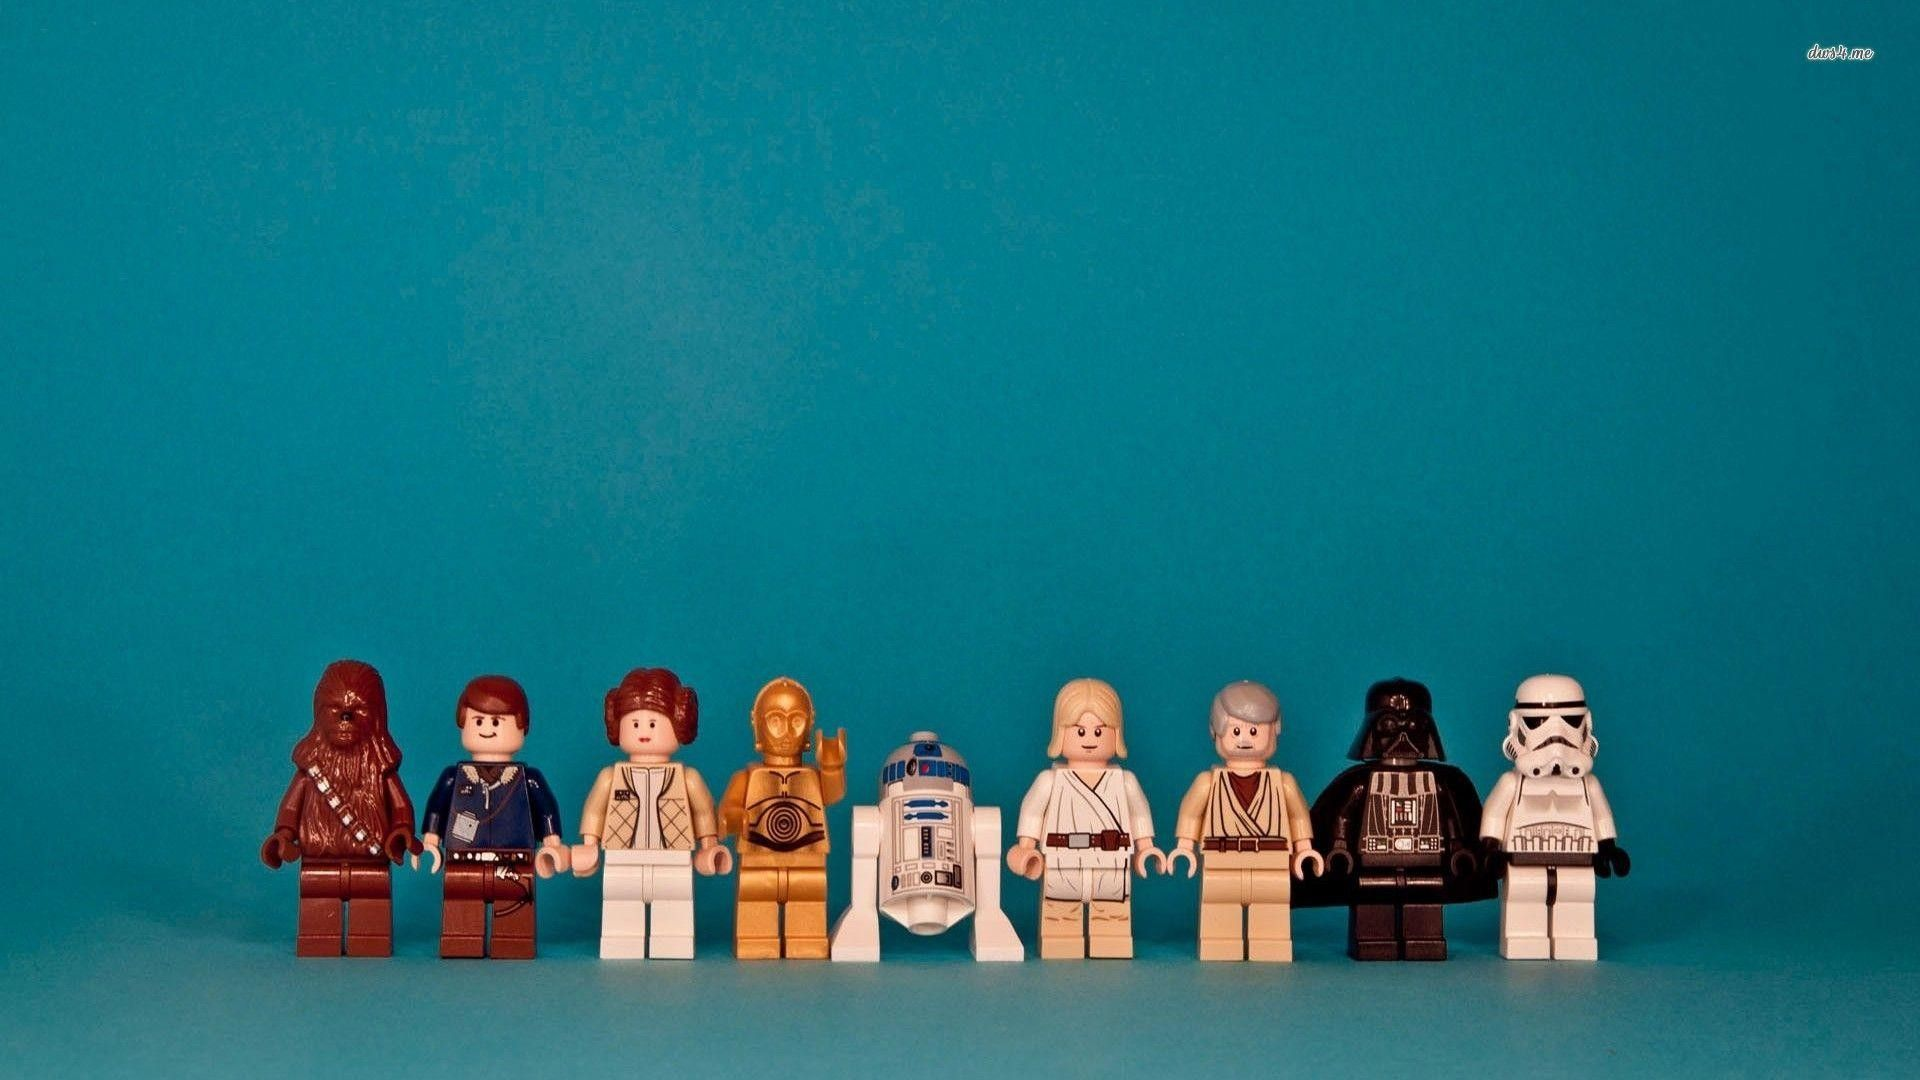 1920x1080 Star Wars Characters Lego Background Hd Wallpaper Of